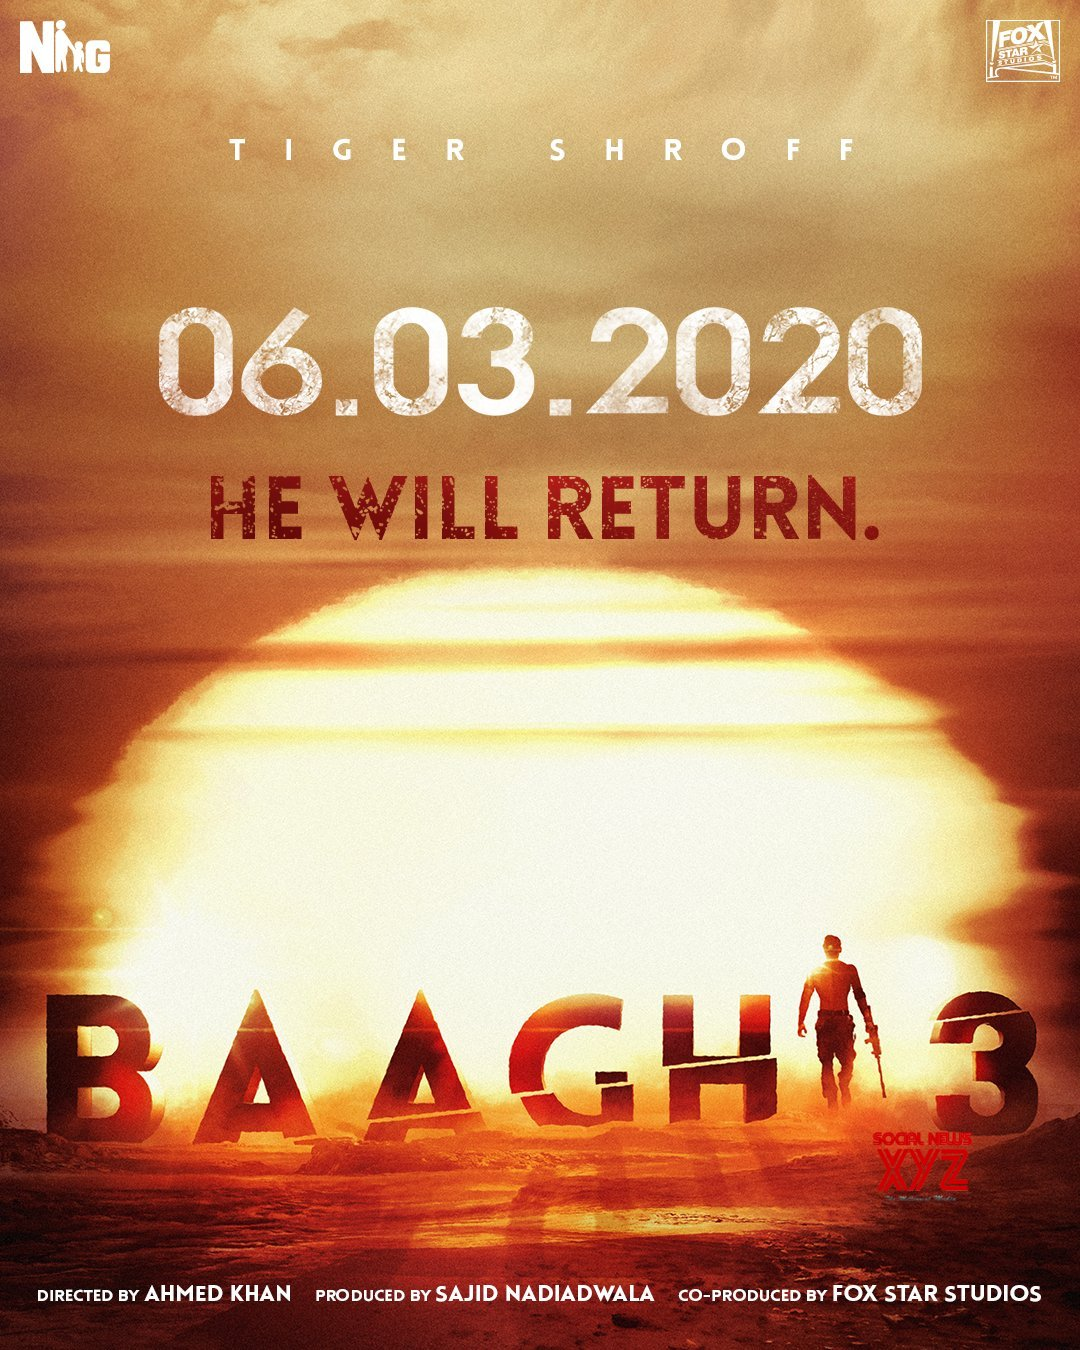 Baaghi 3 Announced, Releases March 6th 2020